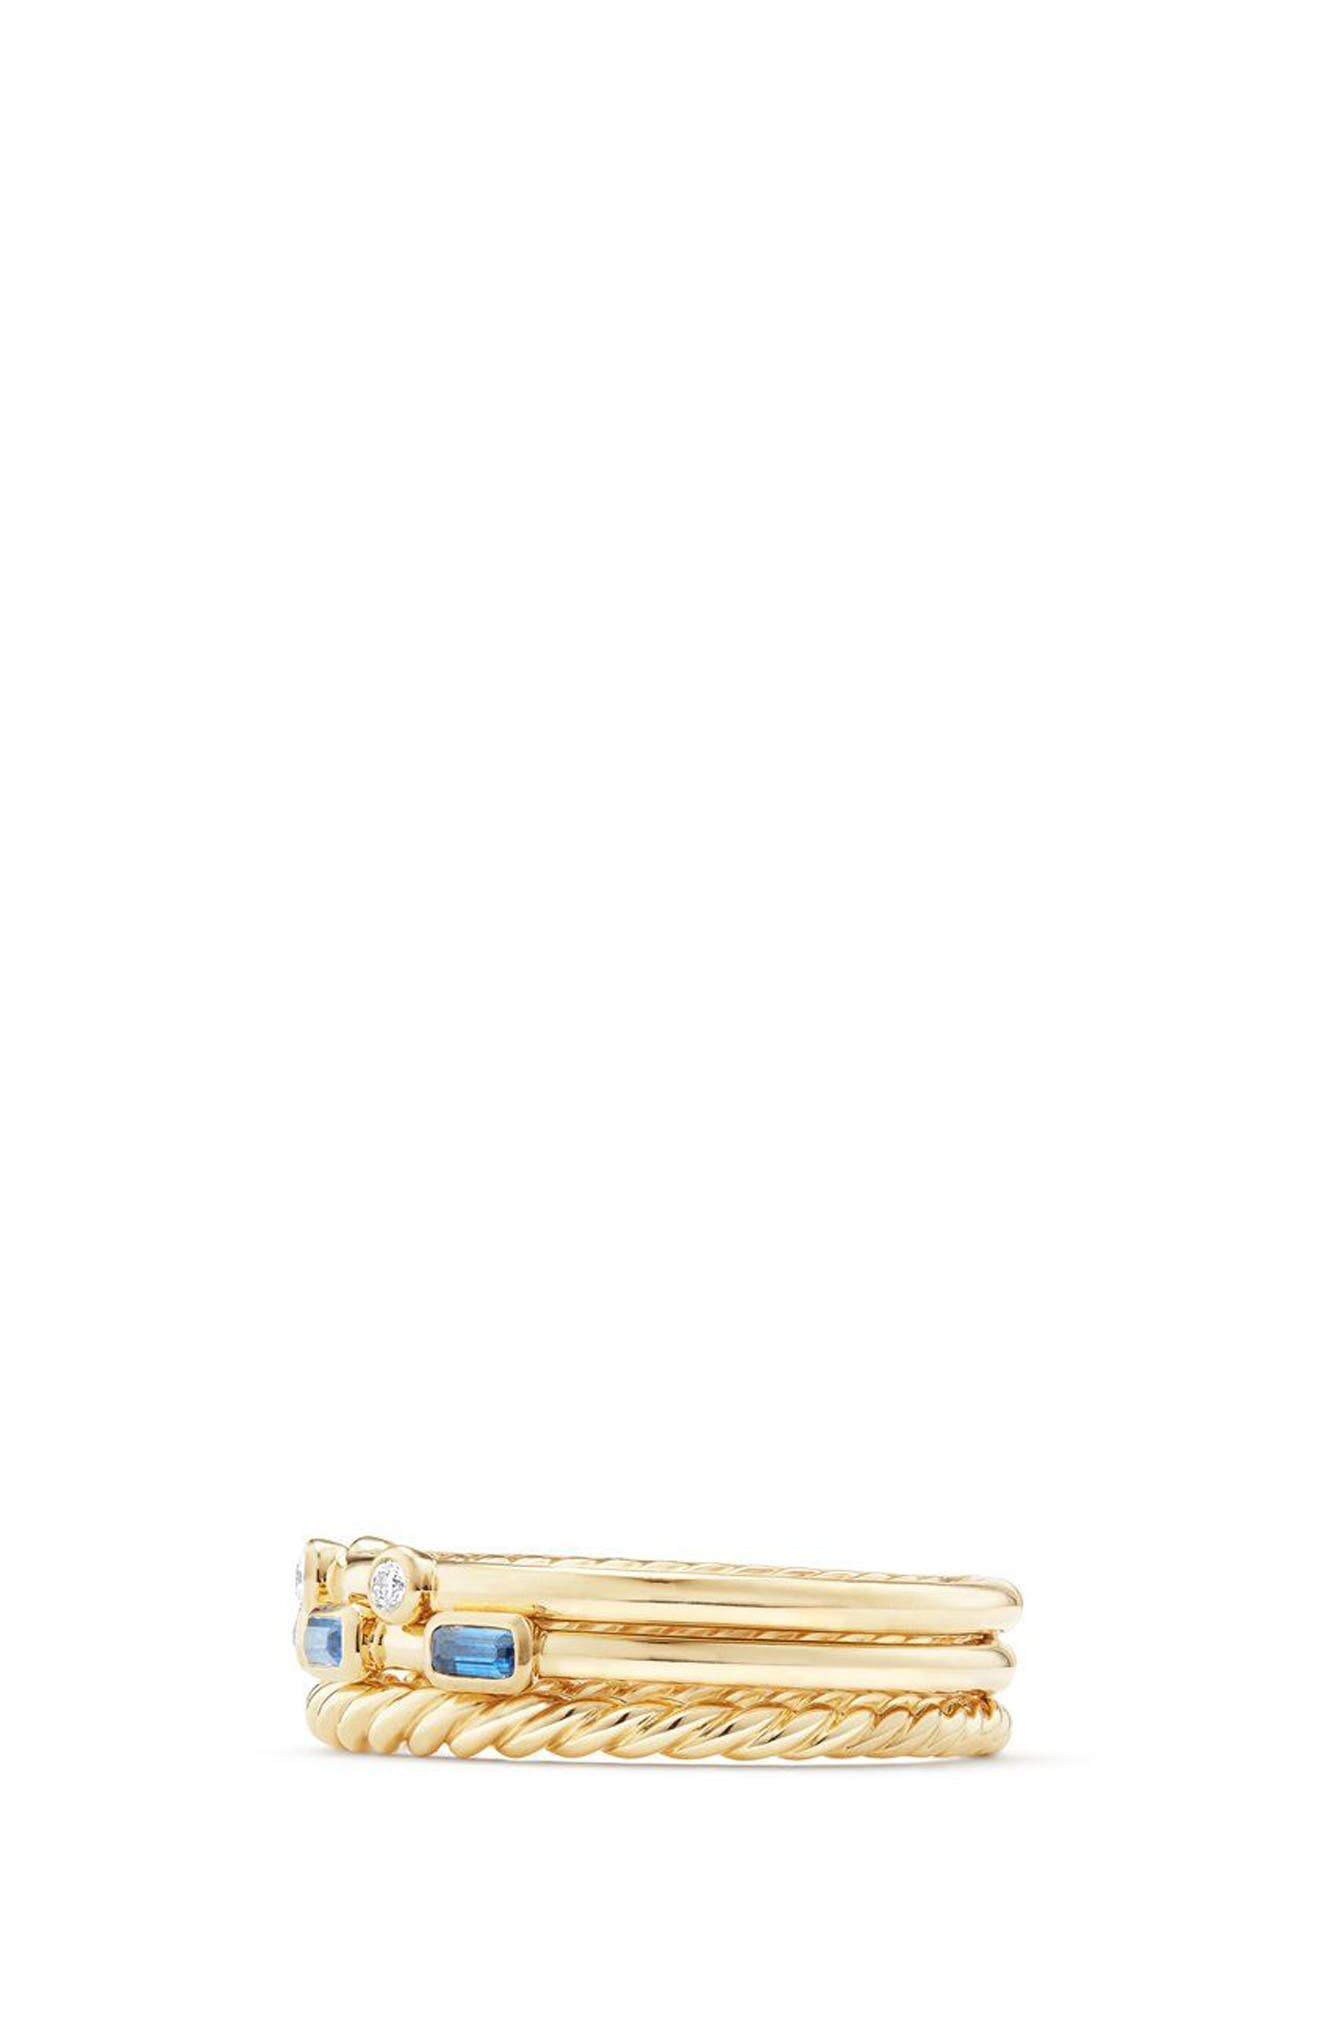 DAVID YURMAN,                             Novella 3-Row Ring with Diamonds,                             Alternate thumbnail 2, color,                             GOLD/ DIAMOND/ BLUE SAPPHIRE